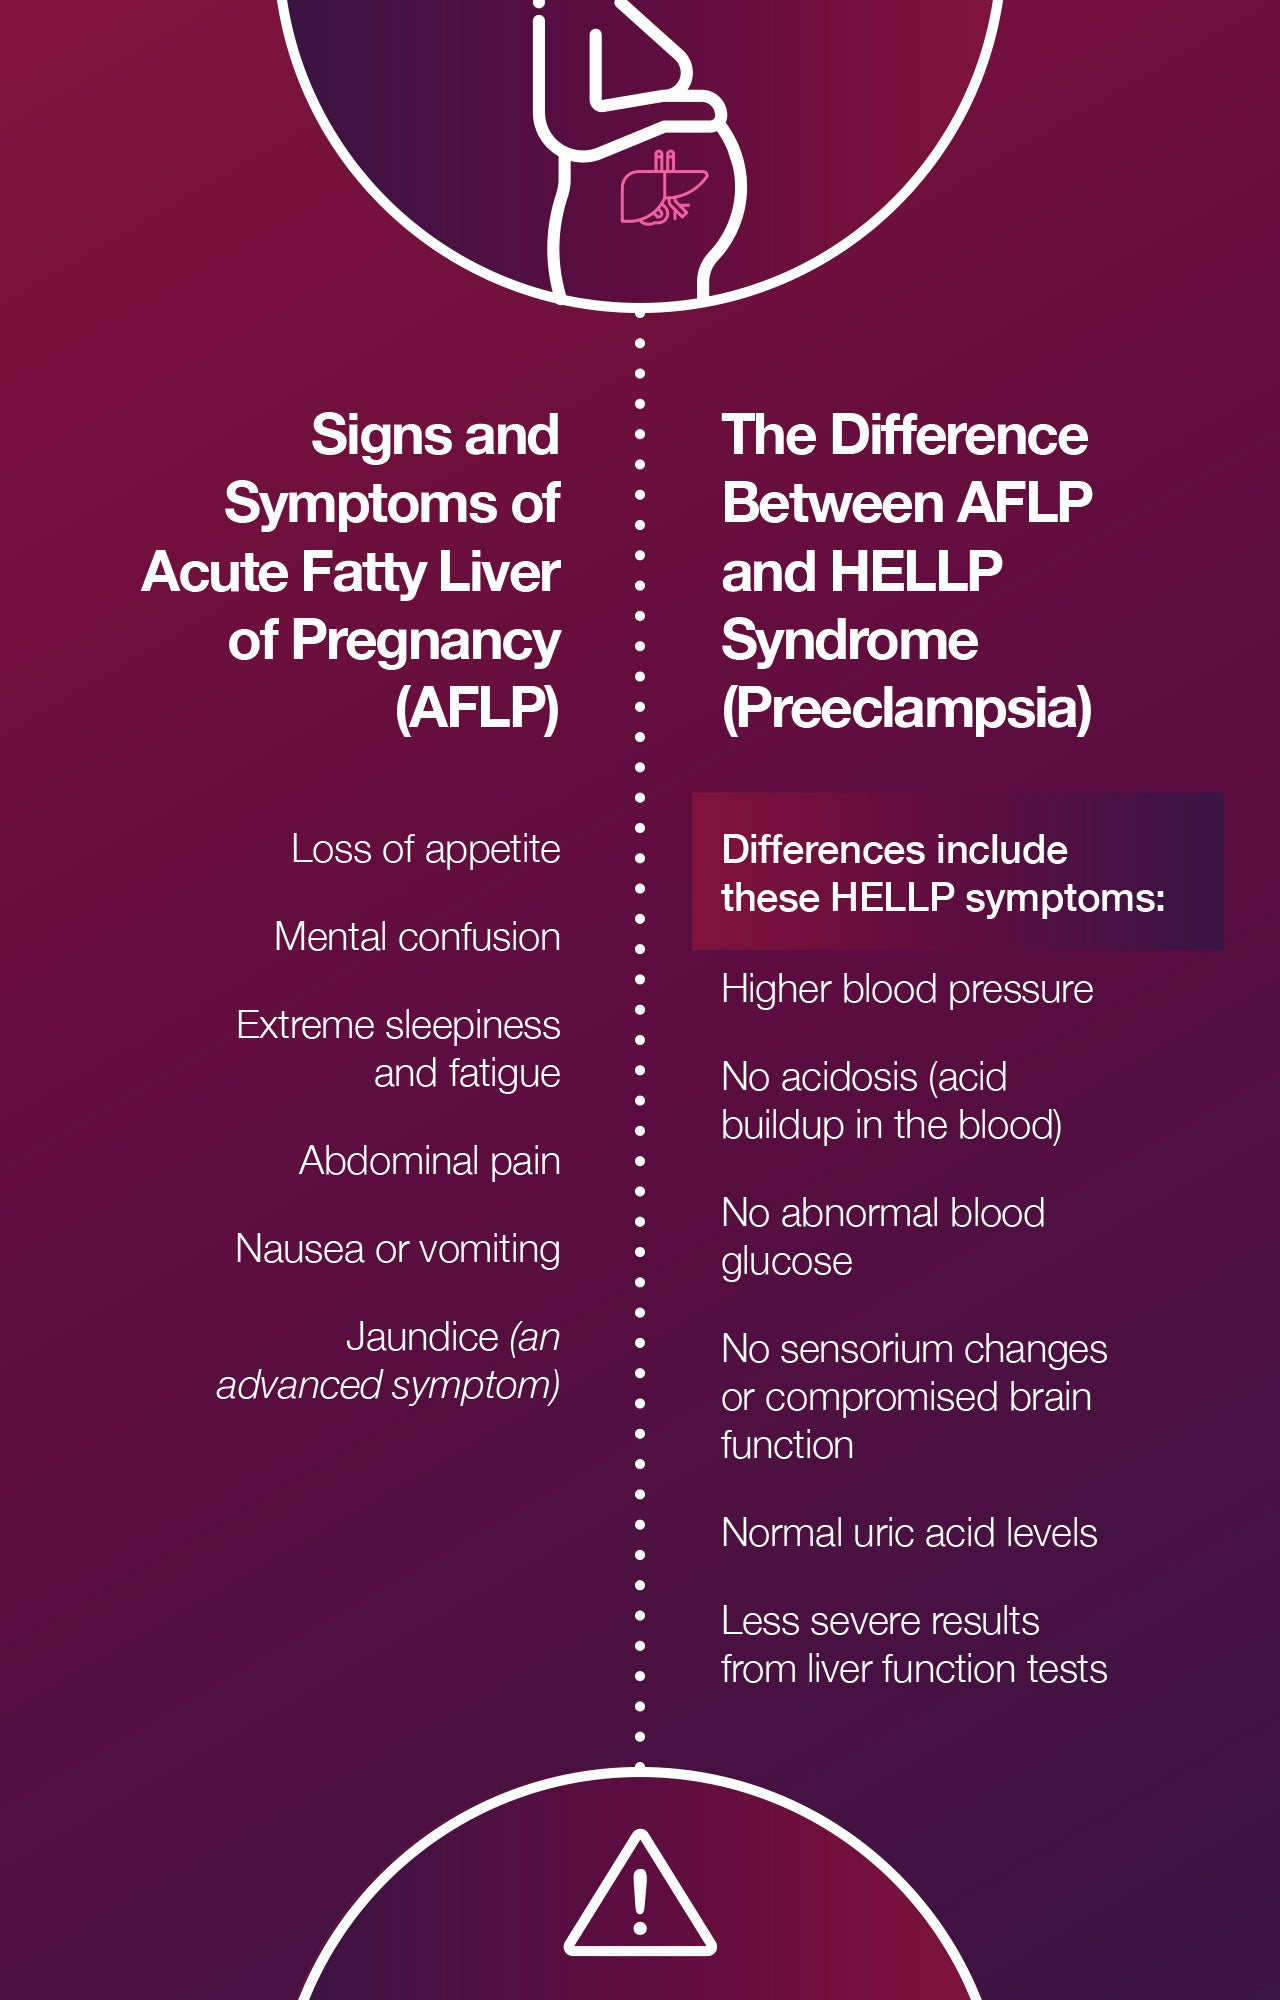 Signs and Symptoms of Acute Fatty Liver of Pregnancy (AFLP)